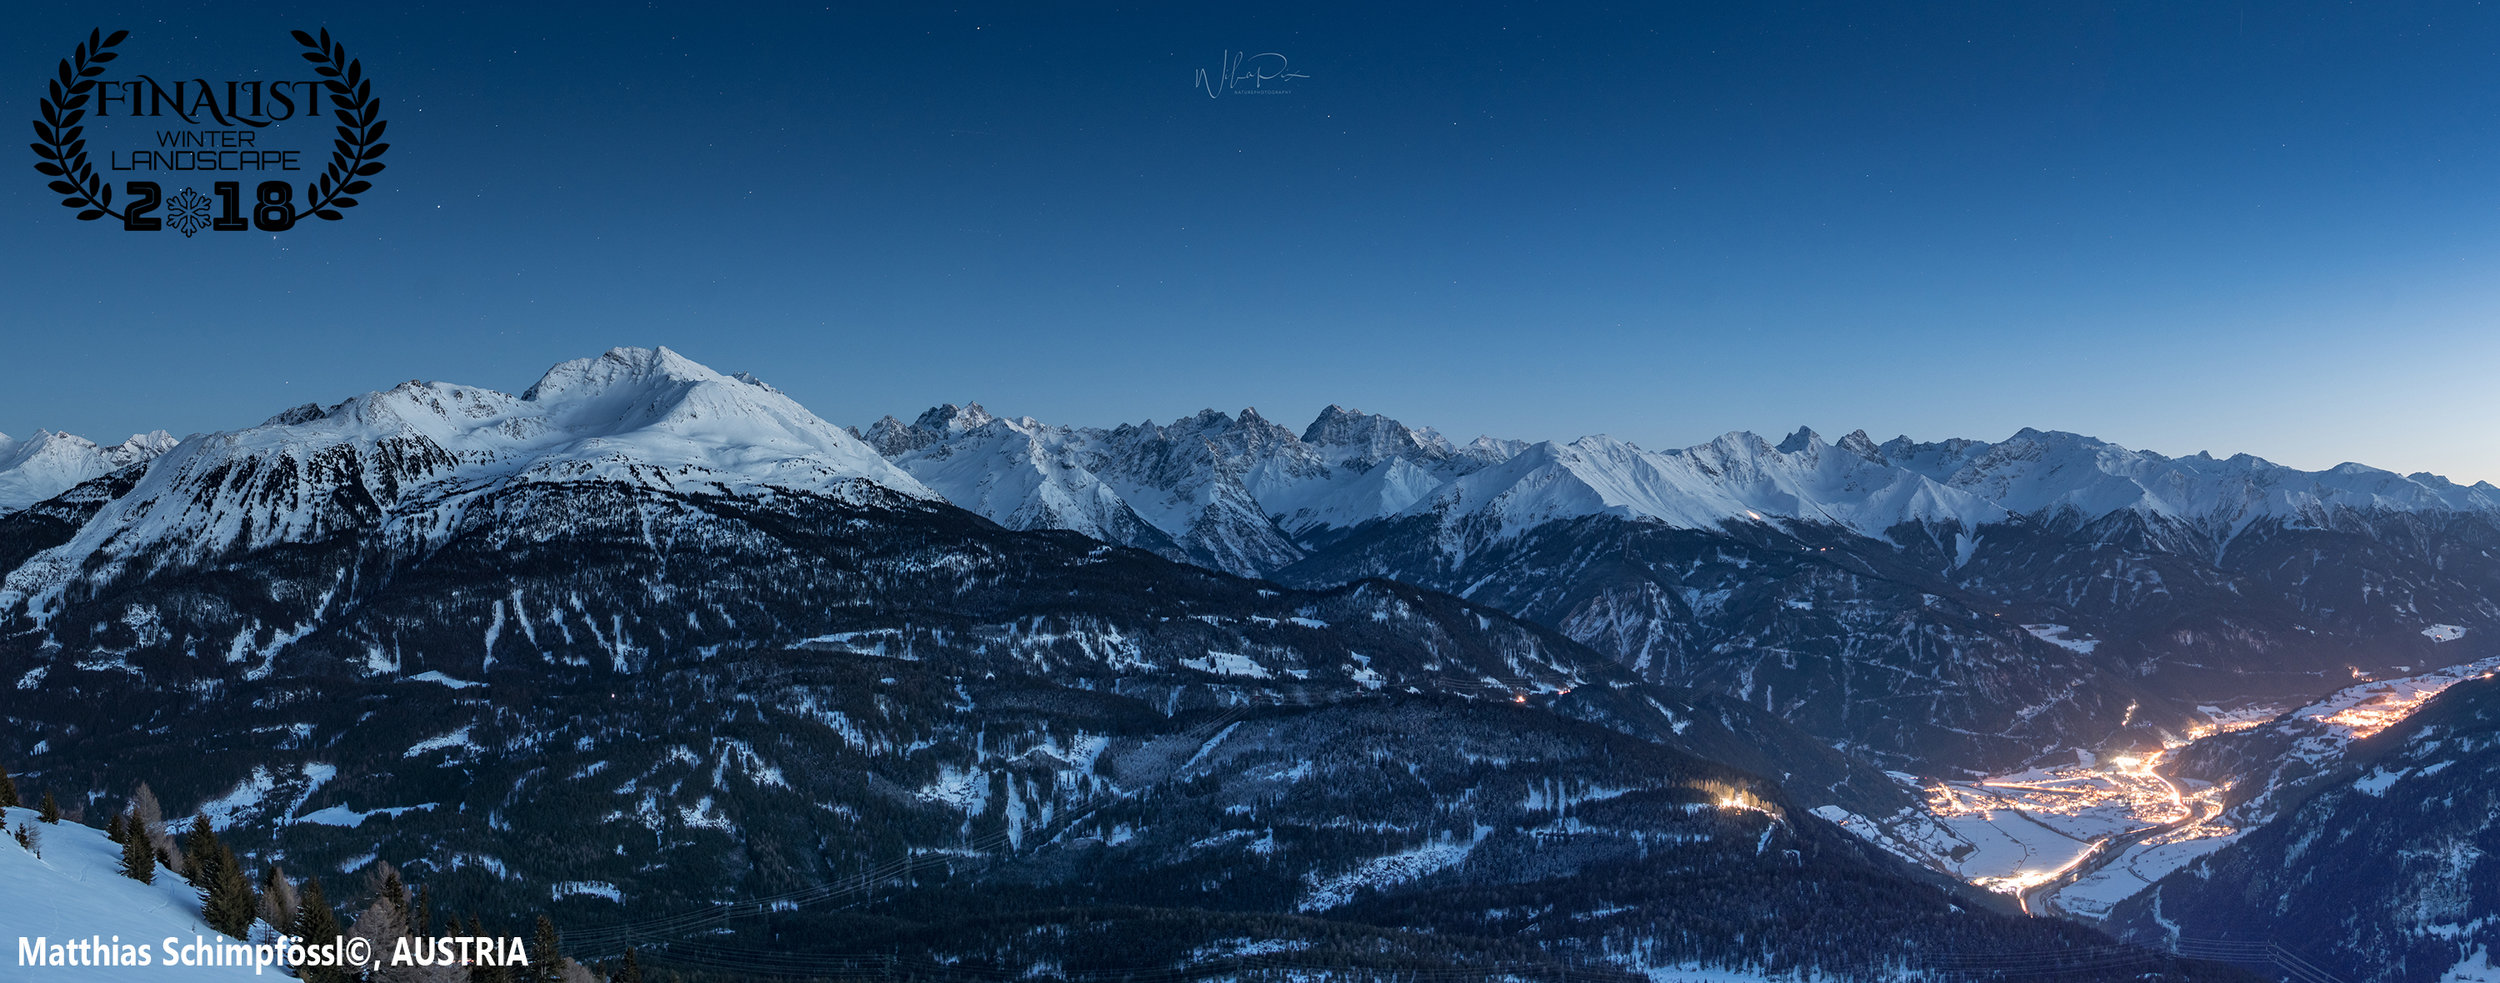 """'when the sun is gone'  """"I made this picture of the tyrolian alps after an 2 hours ski hike. You can see my hometown prutz and the majestic kaunergrat after sunset.""""  Photographer: Matthias Schimpfössl, AUSTRIA"""